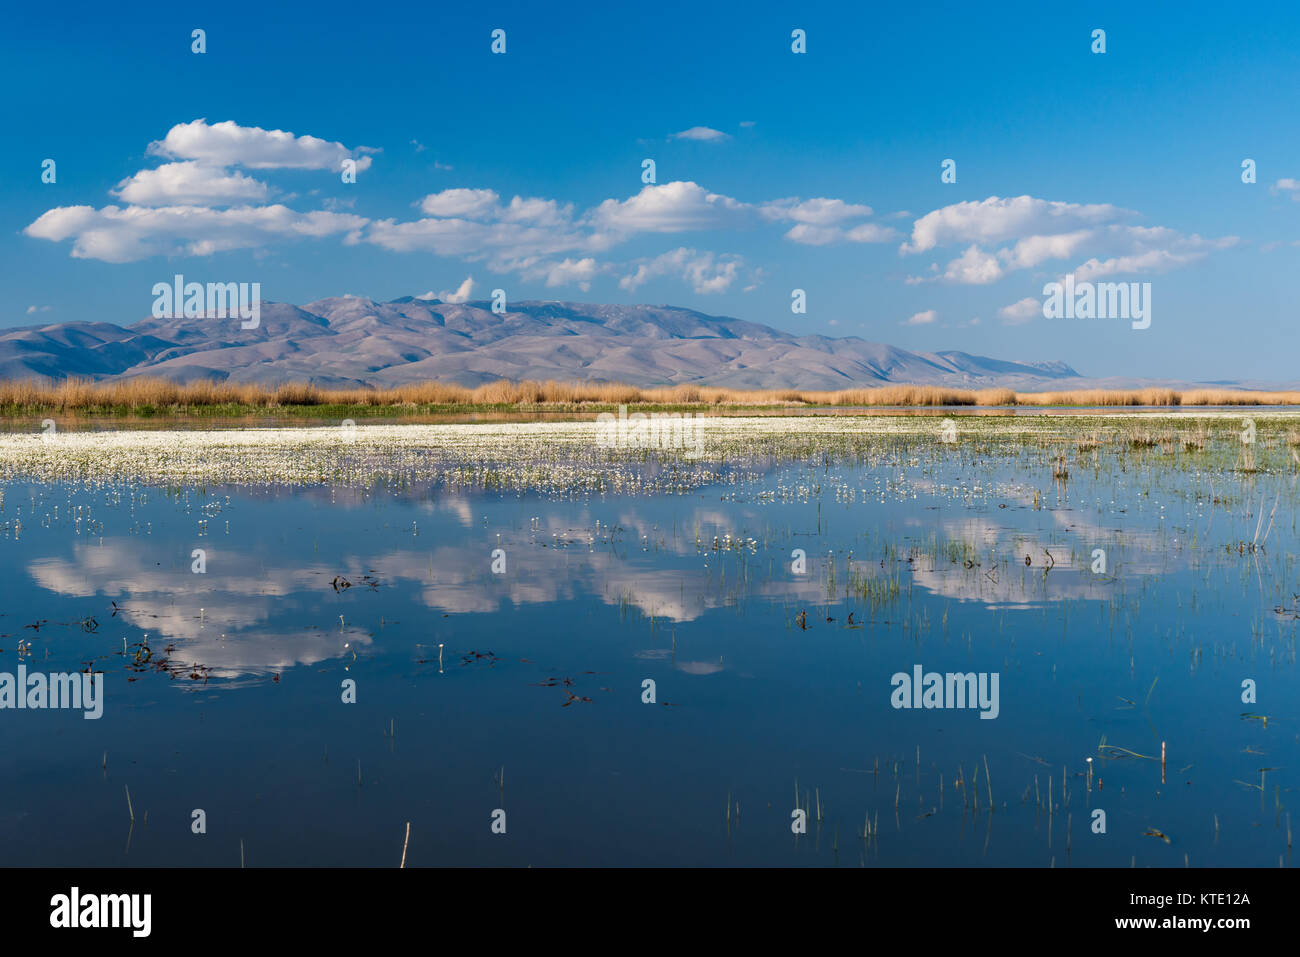 Lake Eber, situated between Cay and Bolvadin districts of Afyon, is the 12th biggest lake of Turkey - Stock Image